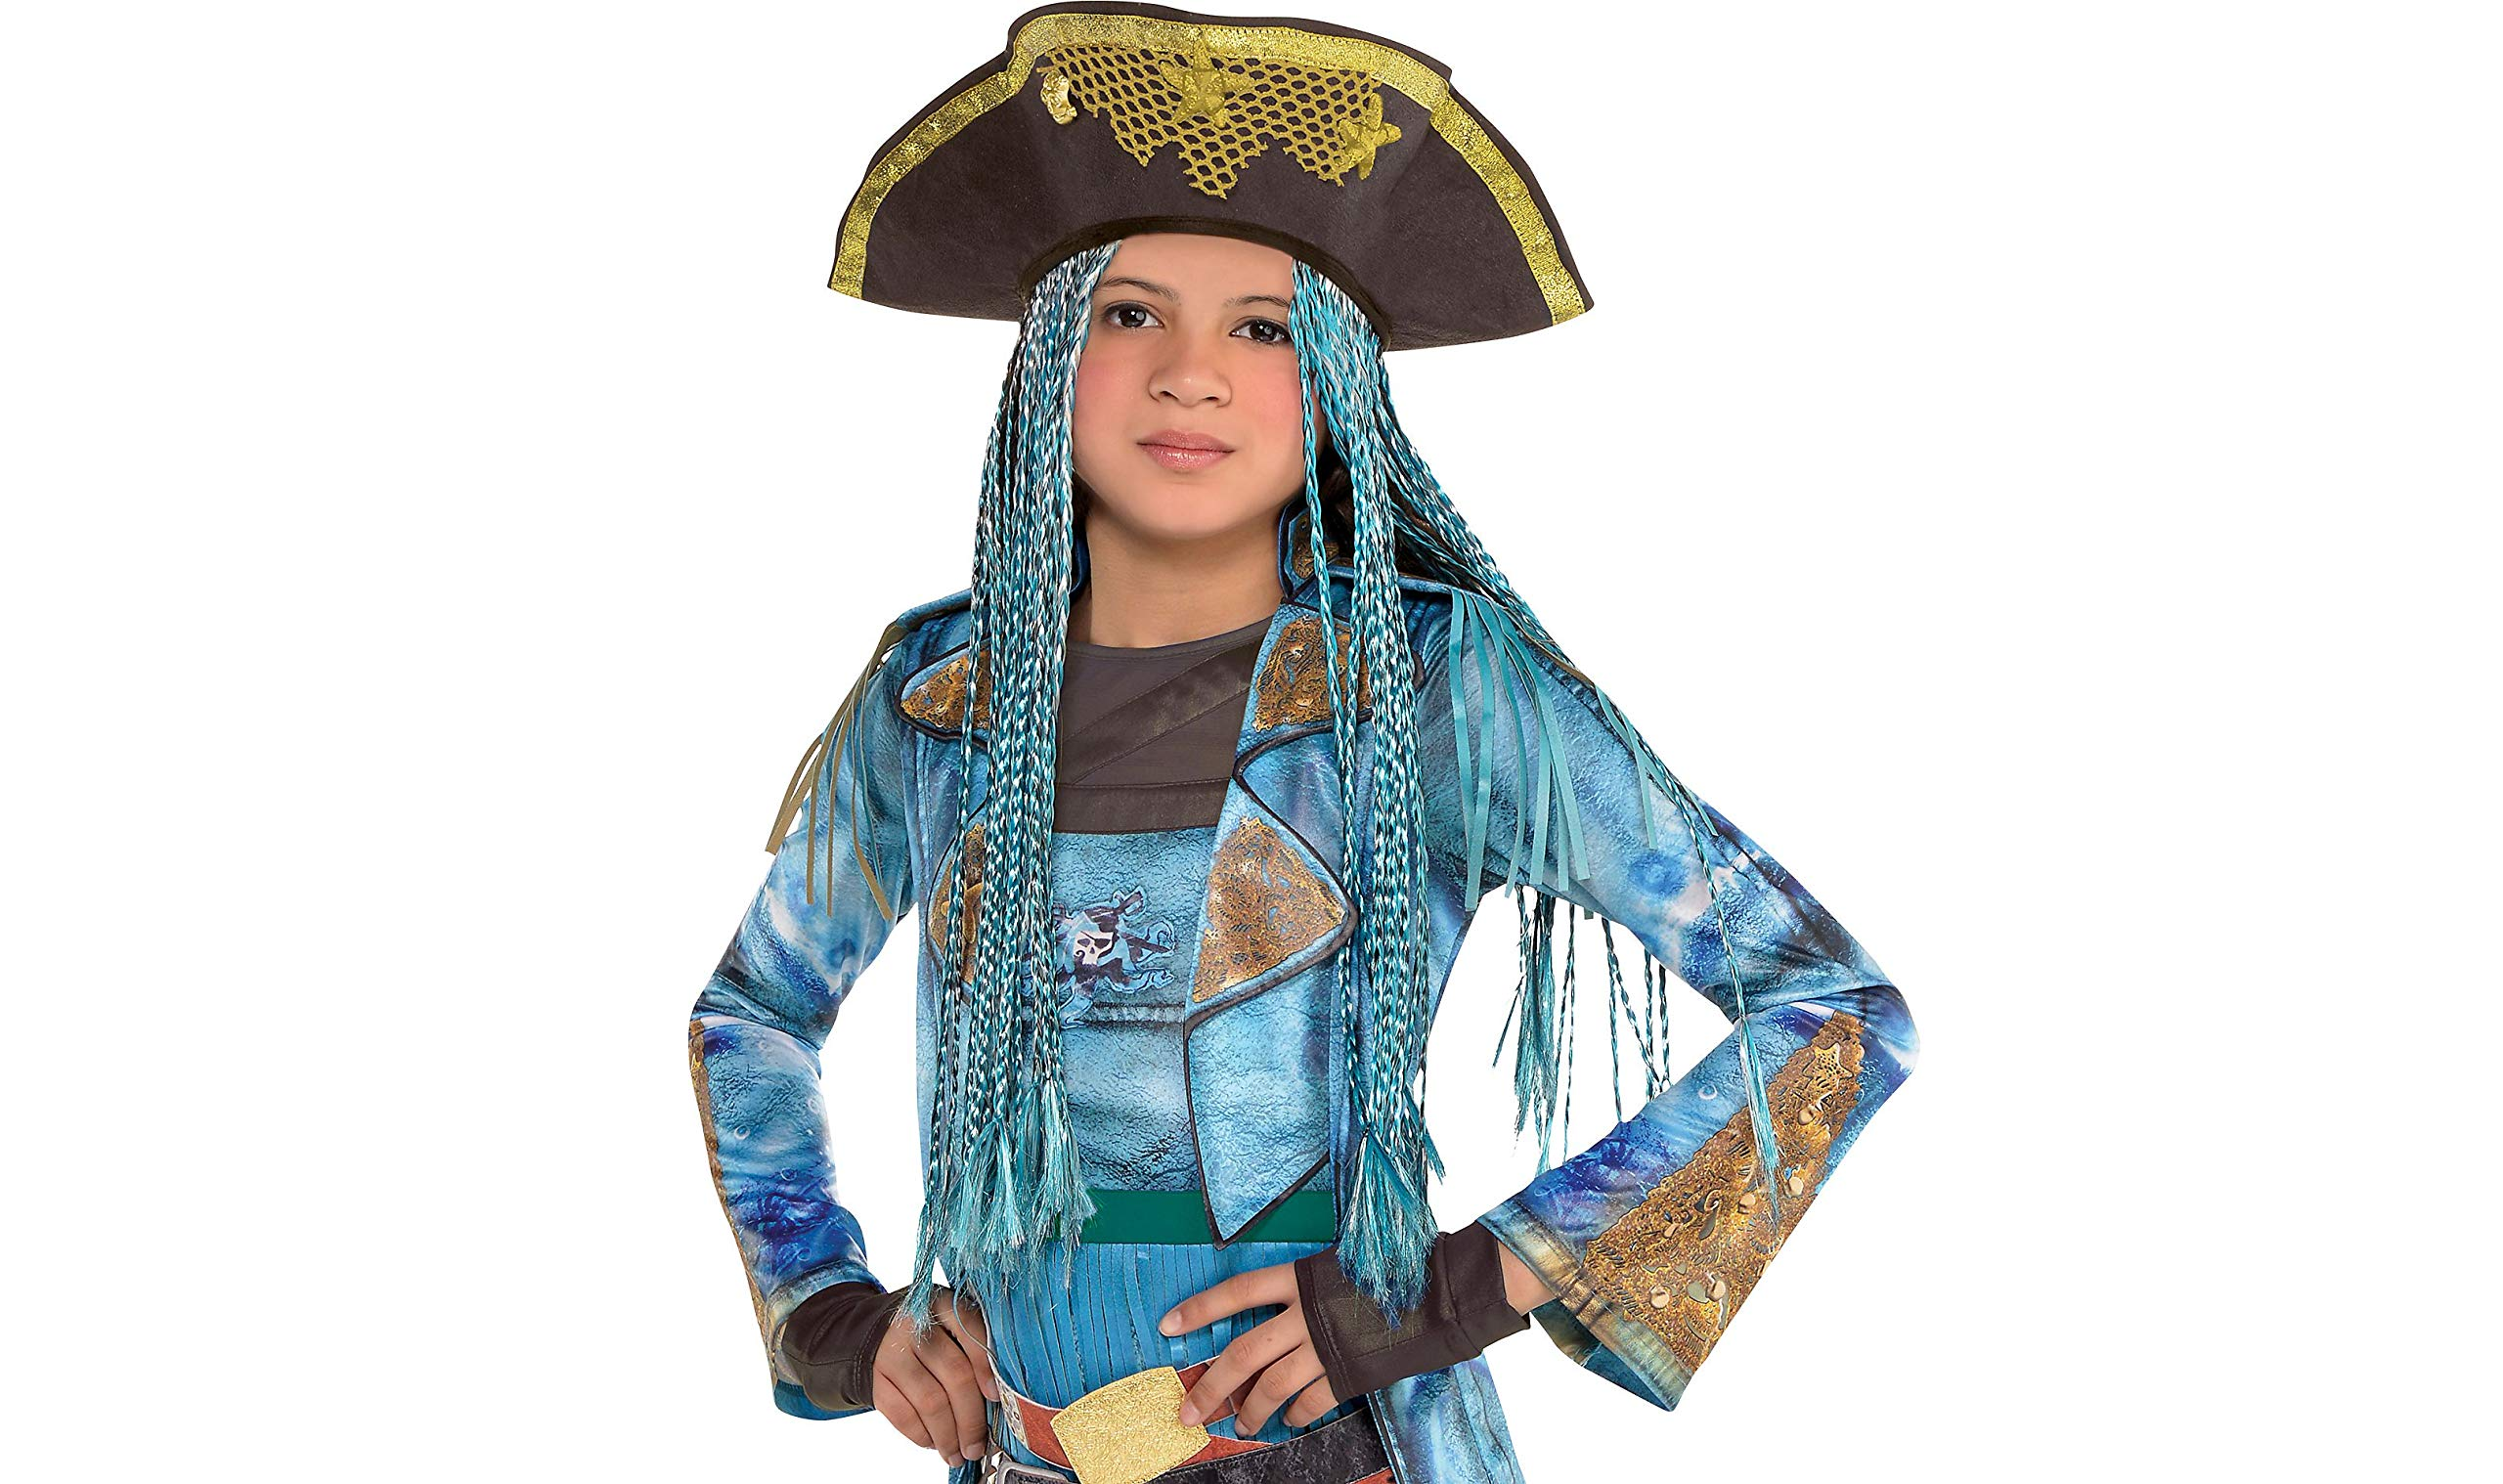 Uma Hat with Braids Descendants Halloween Costume Accessories for Kids, One Size, by Amscan by amscan